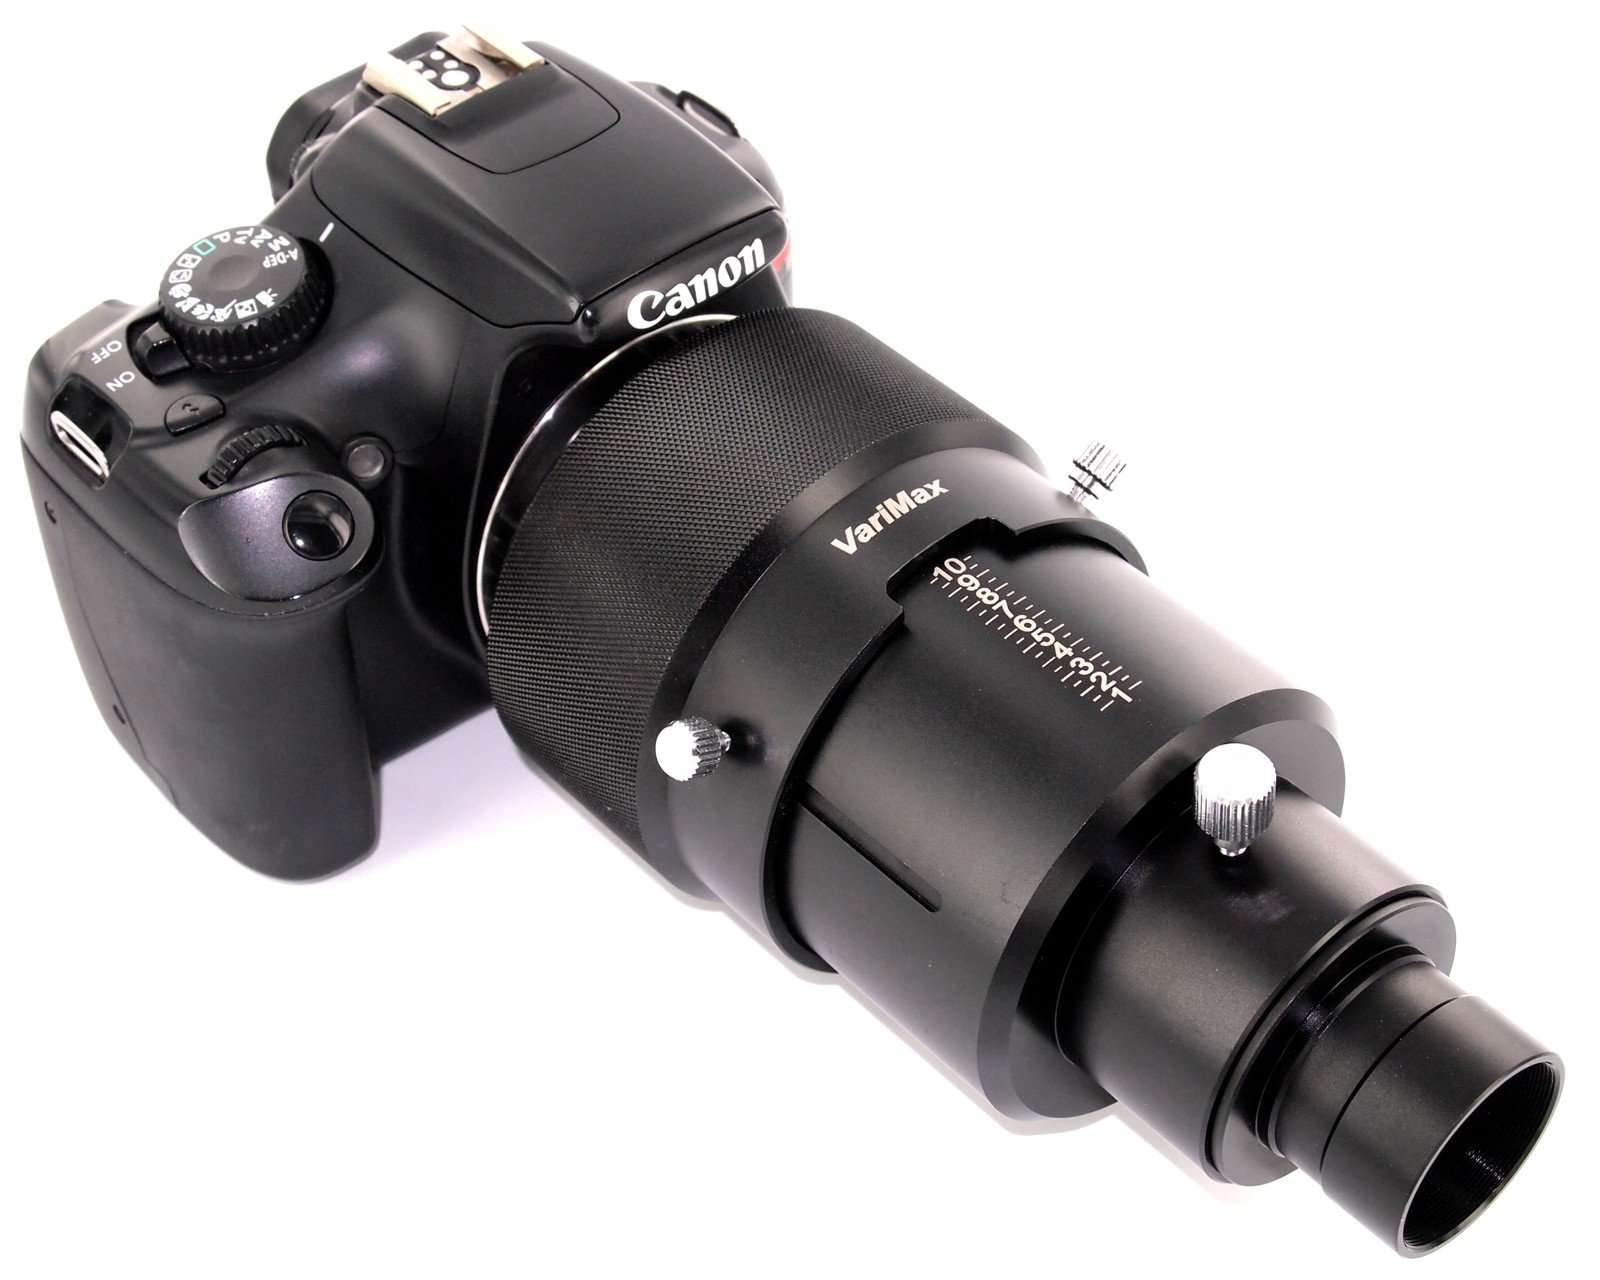 VariMax Pro-Series 1.25'' Variable Eyepiece Projection DSLR Camera Adapter for Telescopes by TelescopeAdapters.com